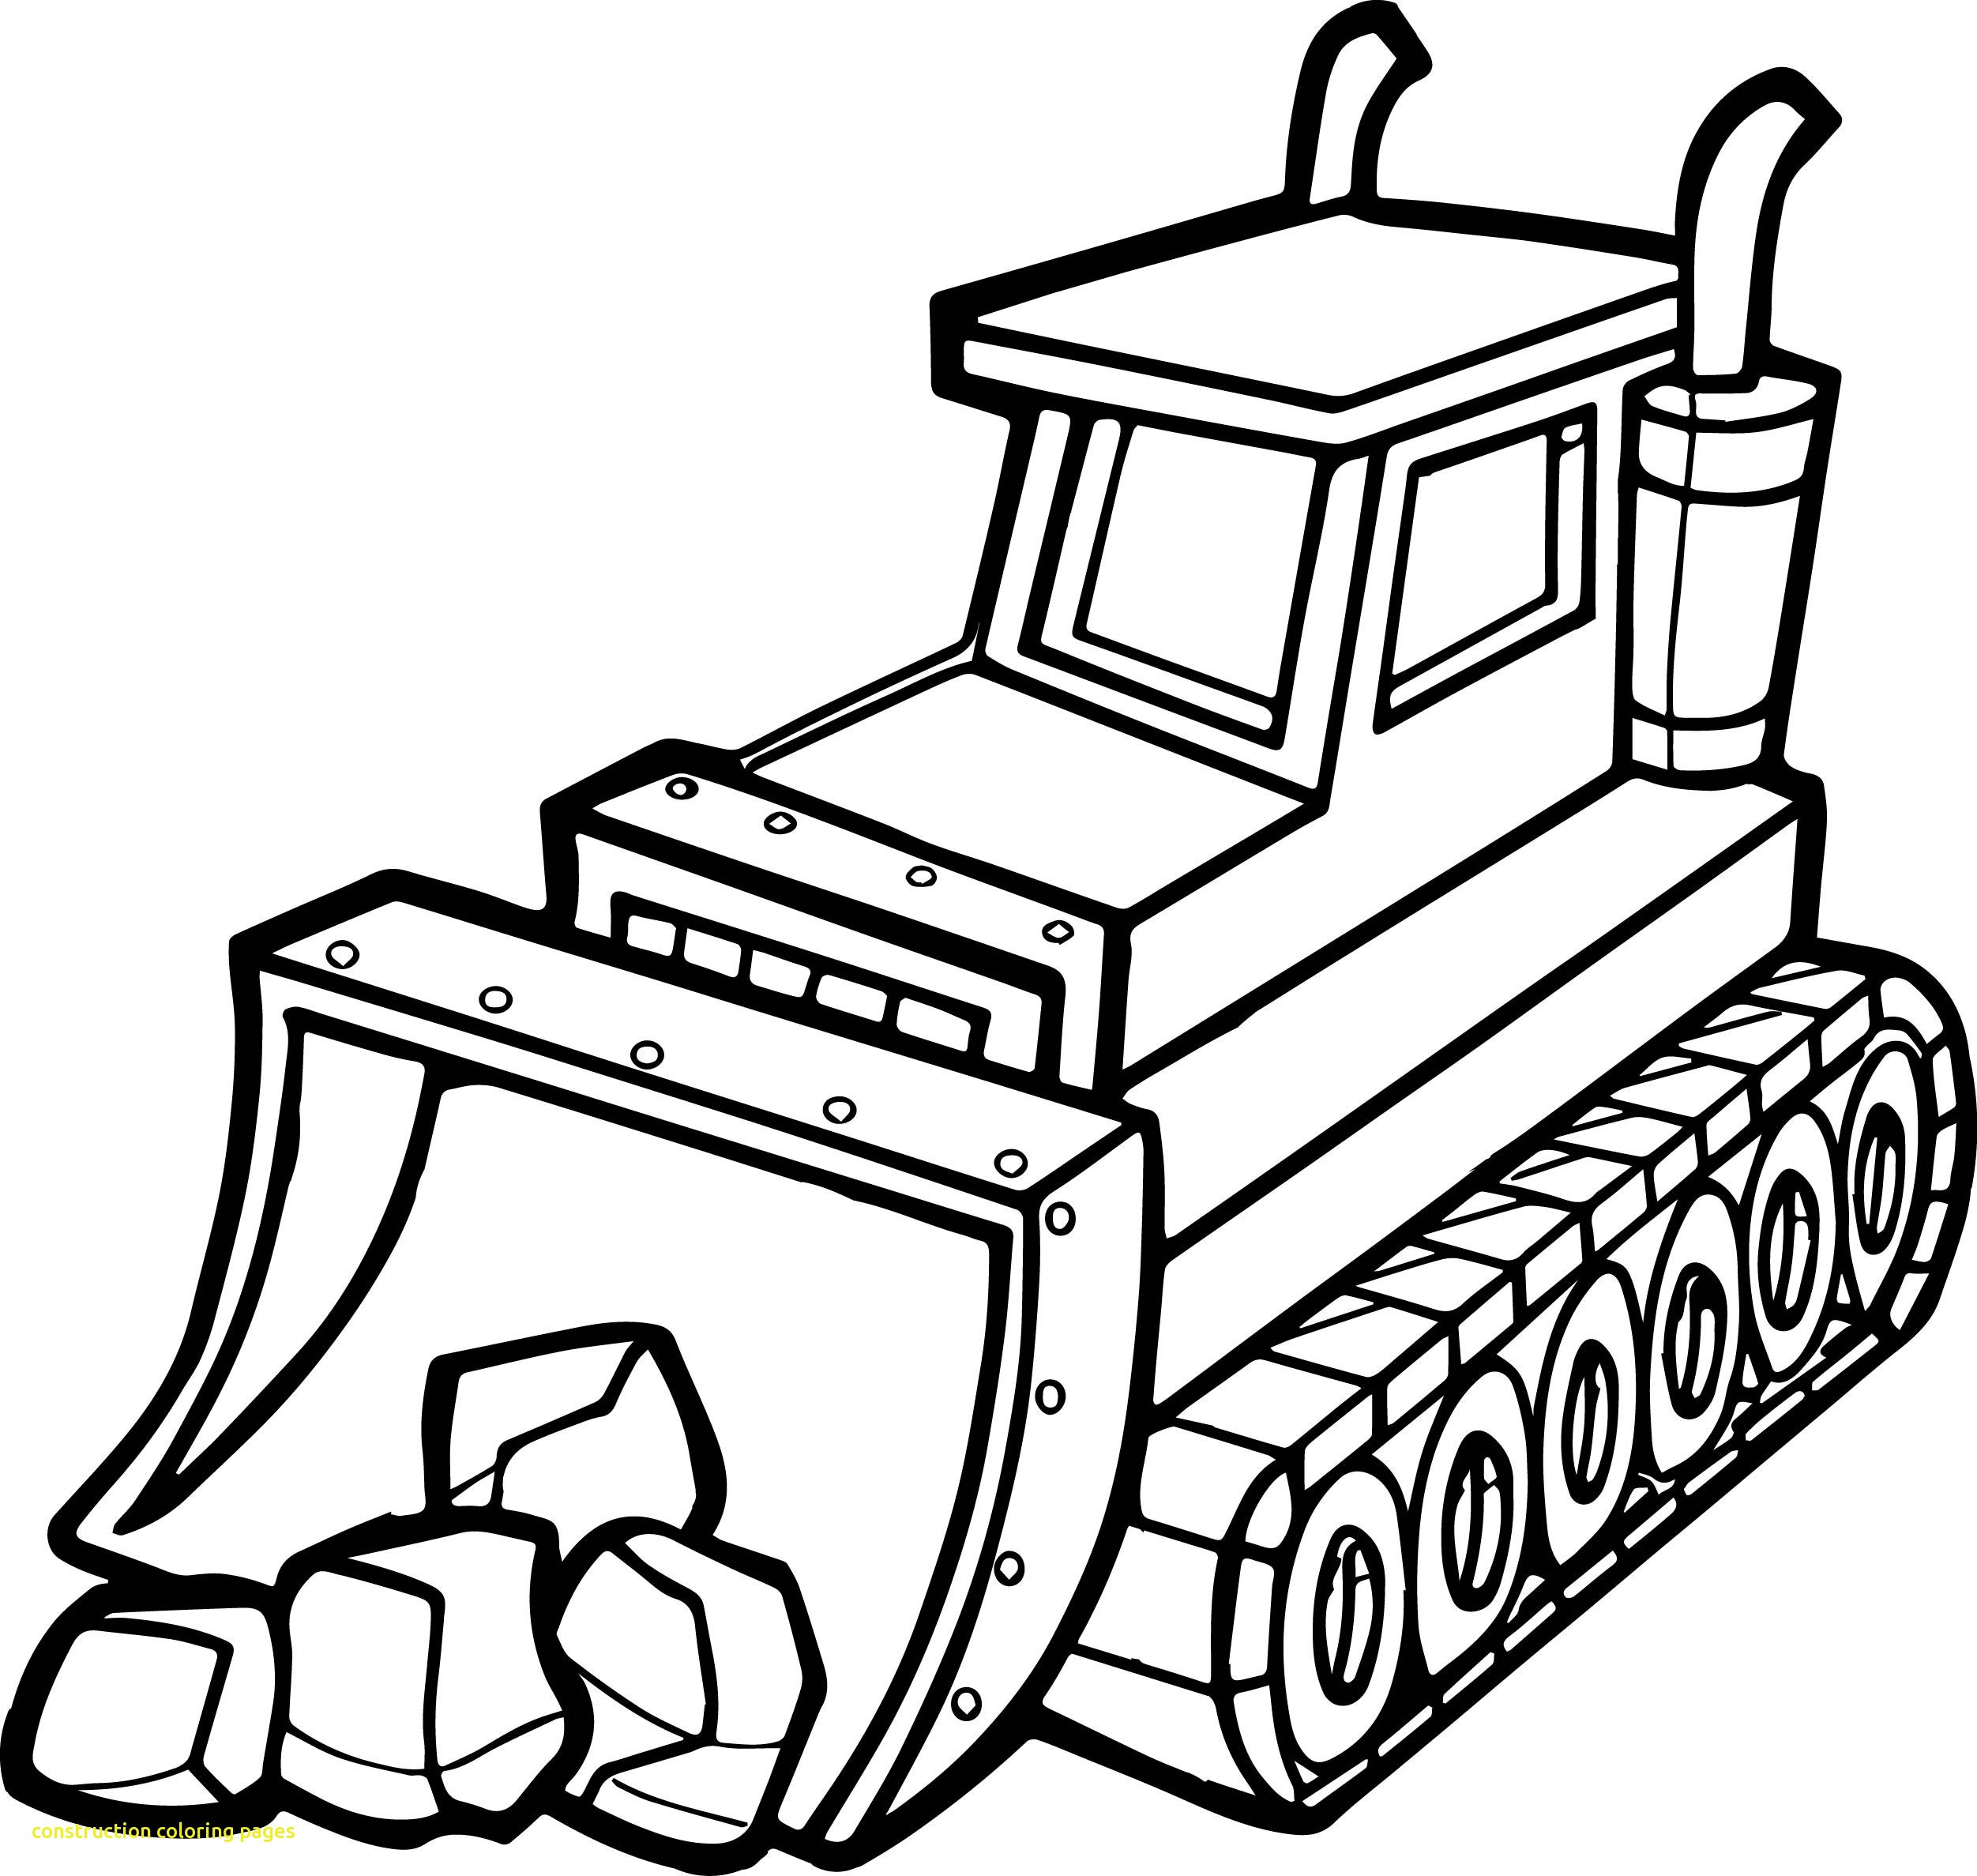 2503x2375 Construction Coloring Pages Coloringpageforkids.co